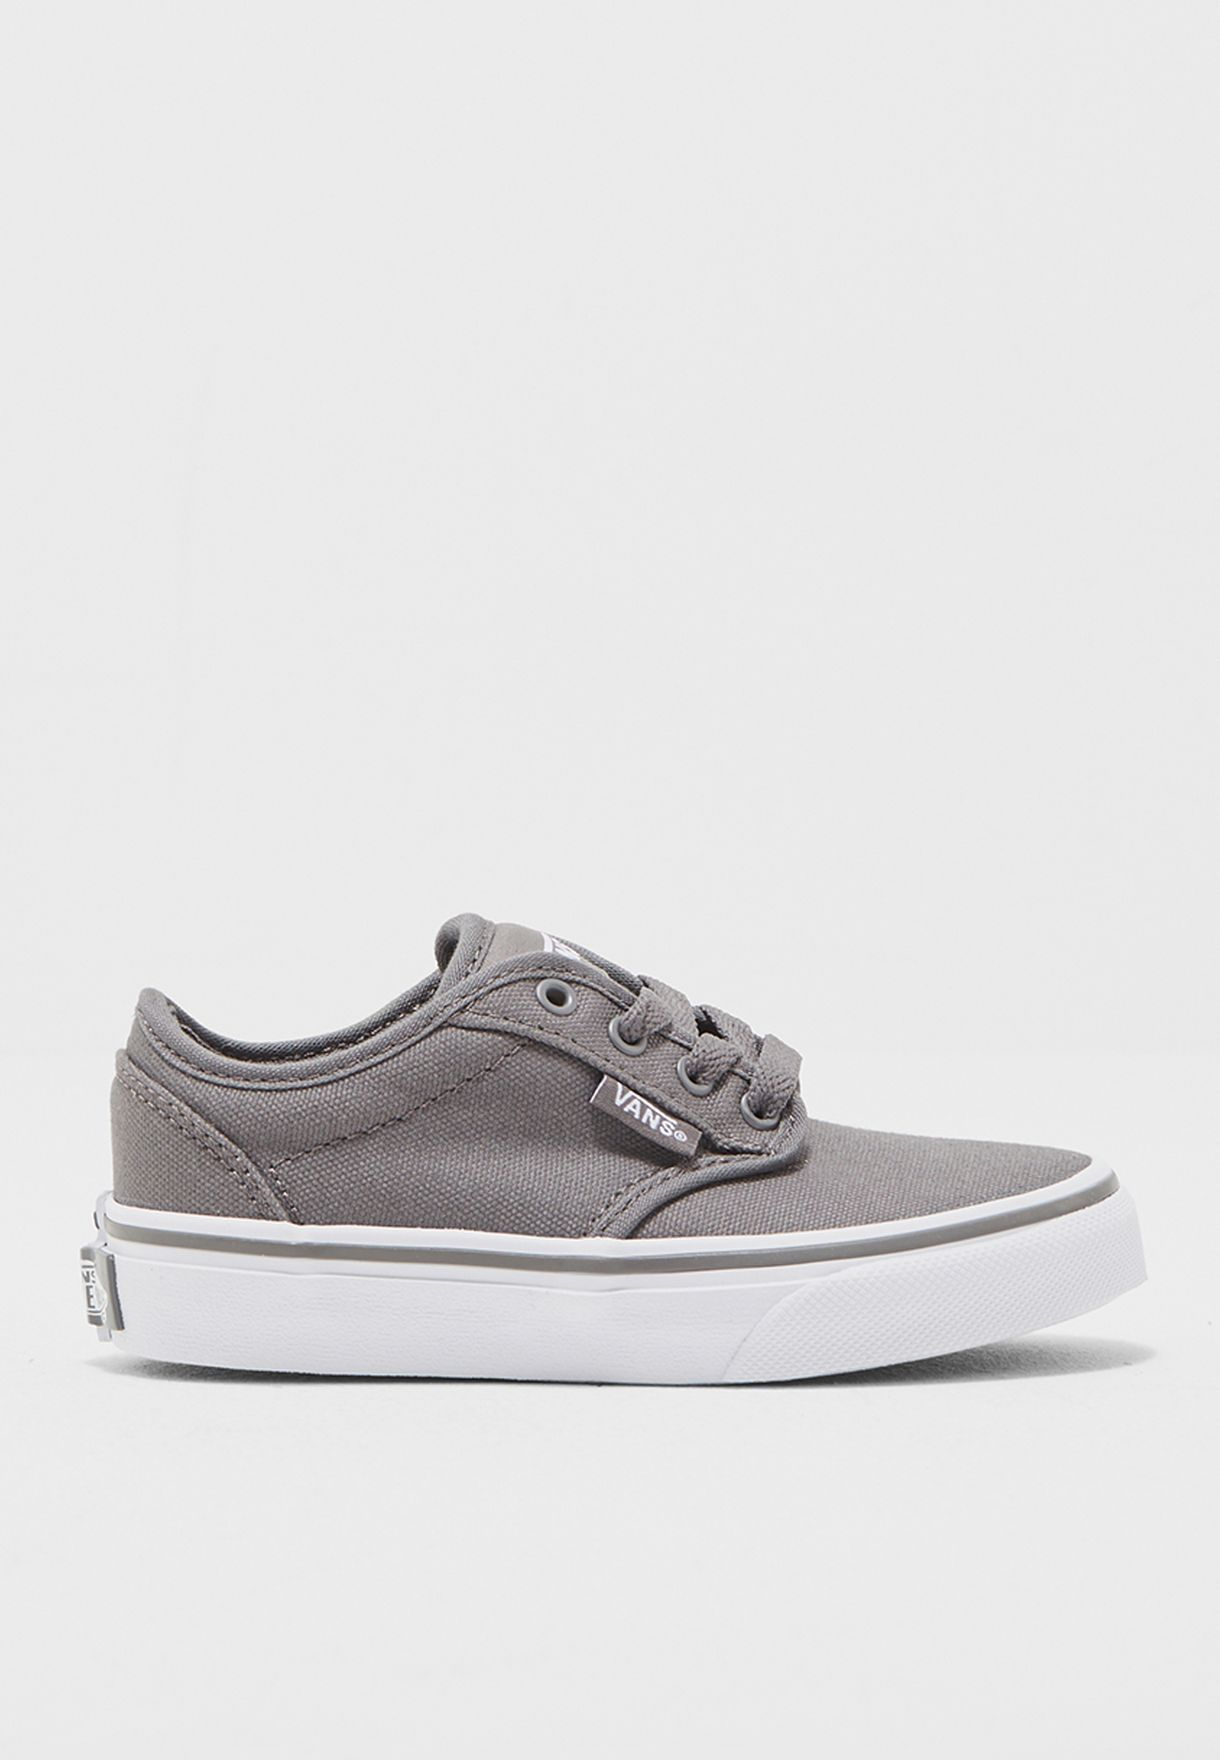 e7a2662fa12 Shop Vans grey Atwood Sneakers Kids ZNR4WV for Kids in Kuwait ...